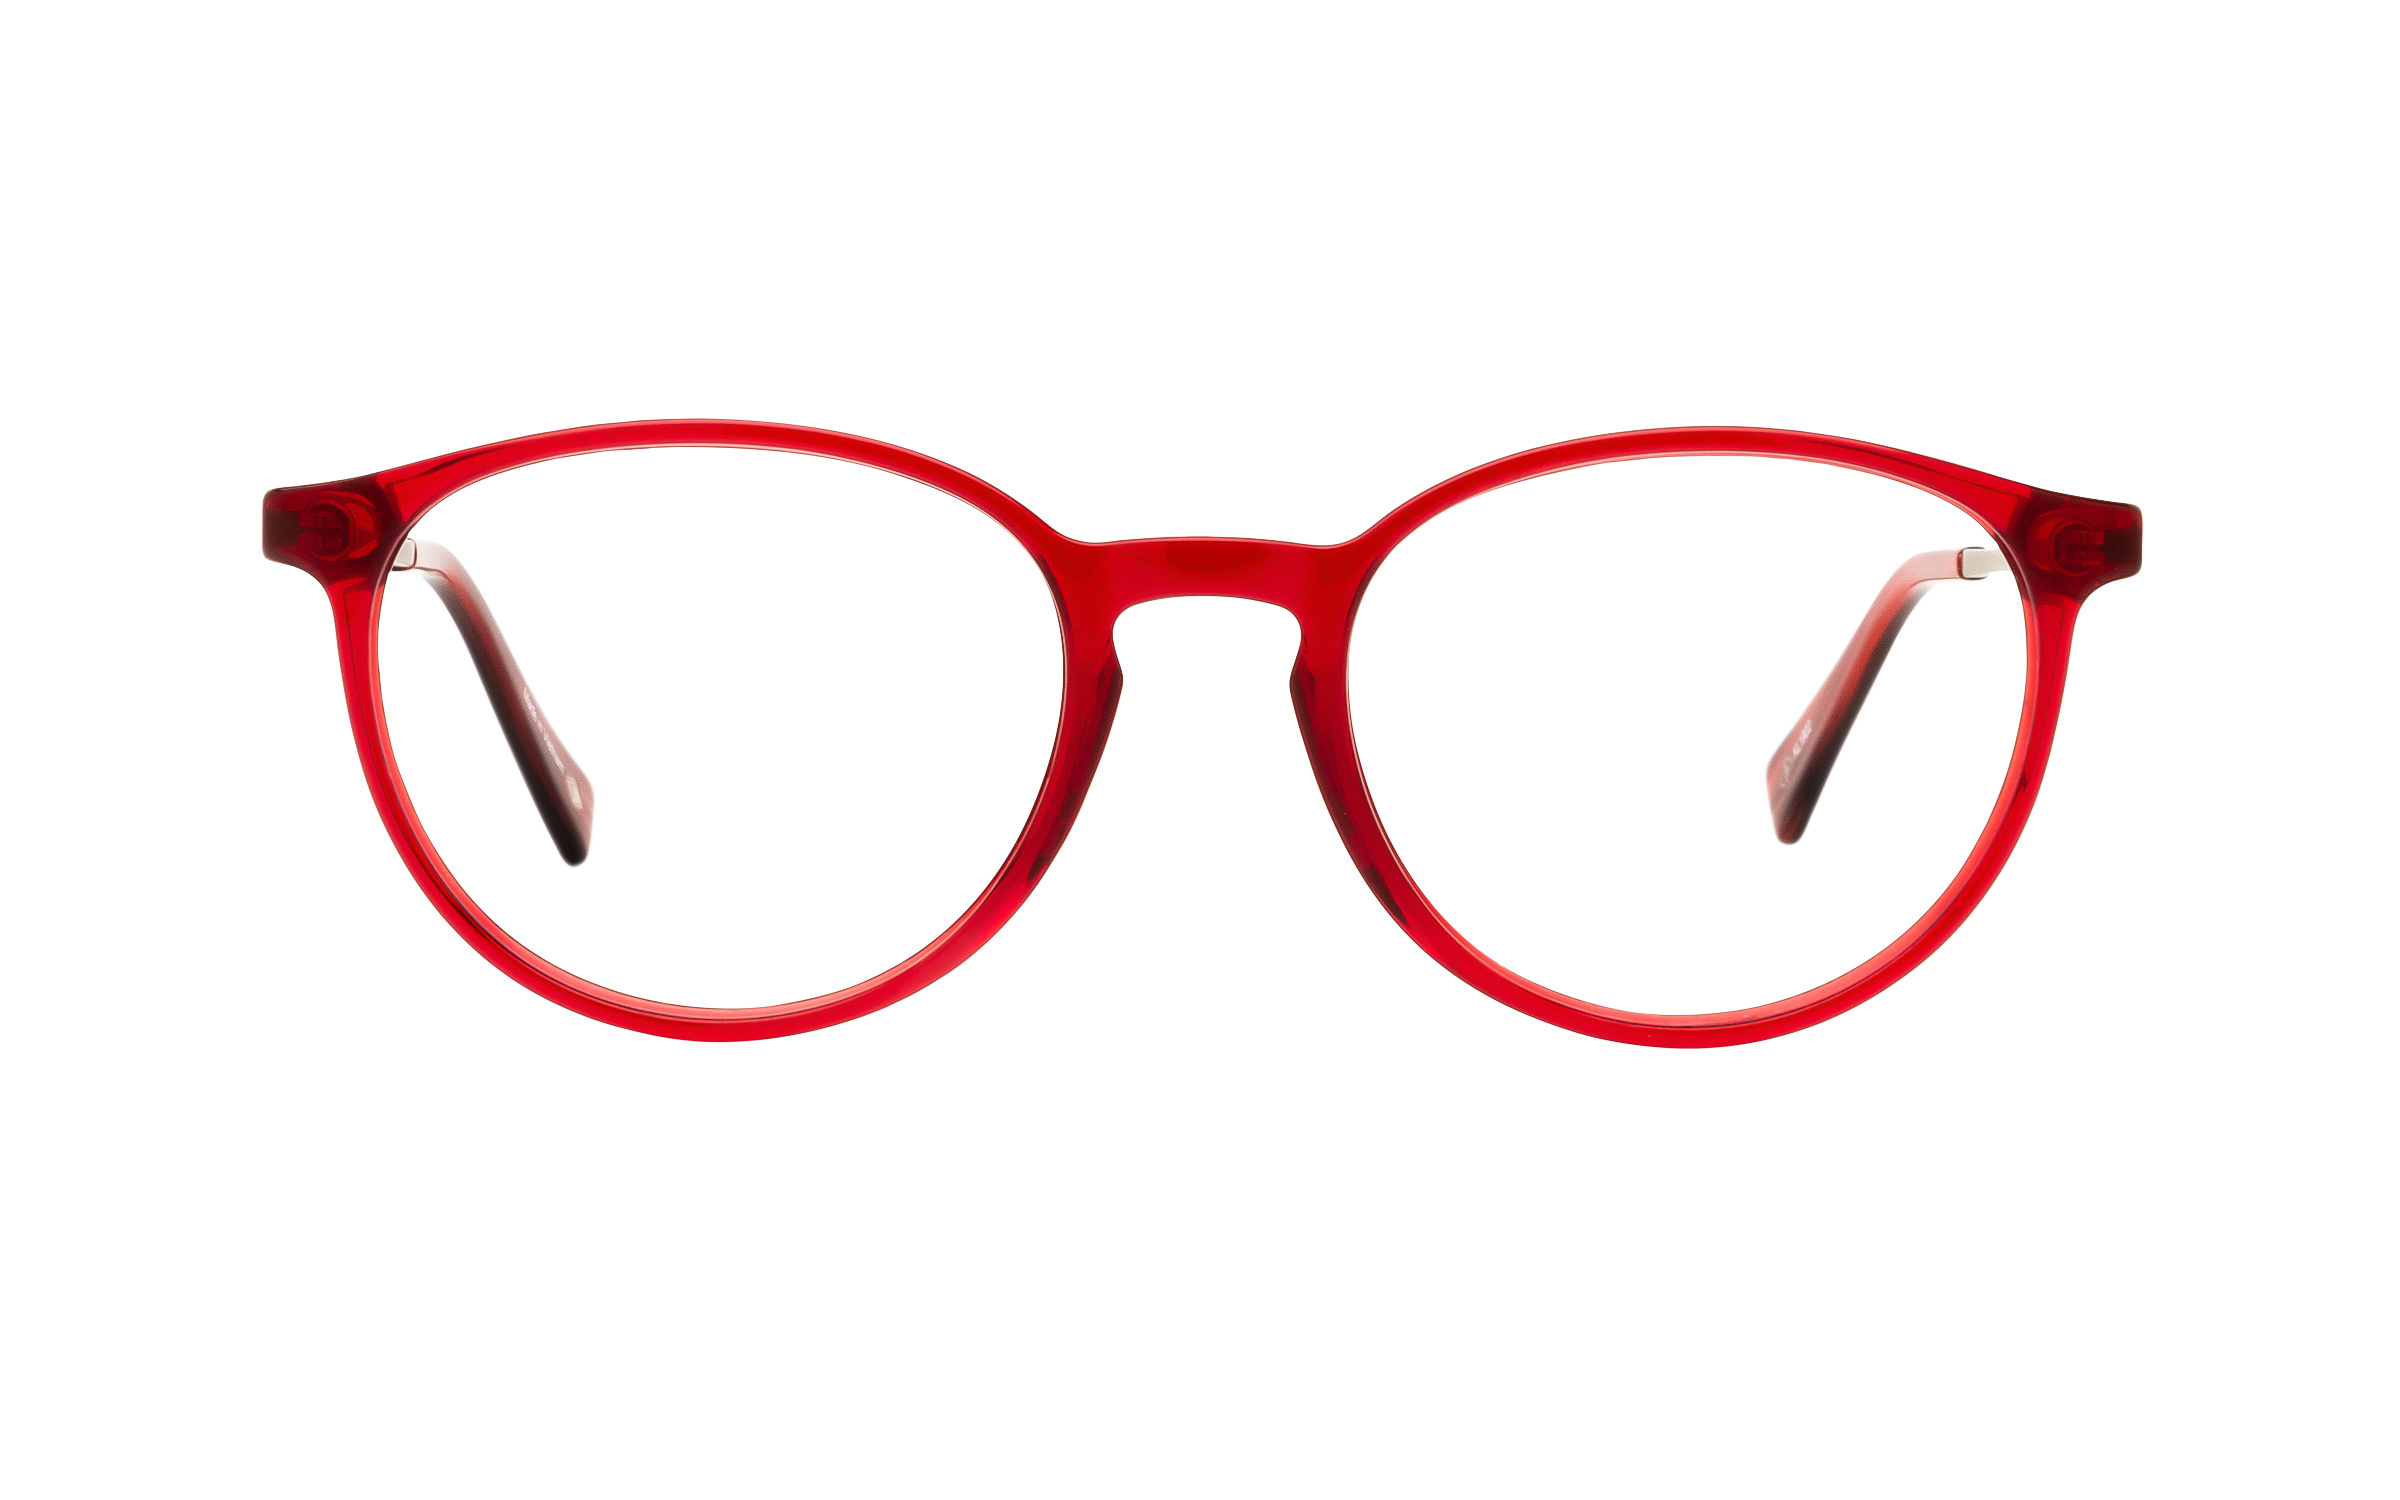 Main and Central Edenderry MC159 C02 (50) Eyeglasses and Frame in Cherry Red | Acetate/Metal - Online Coastal